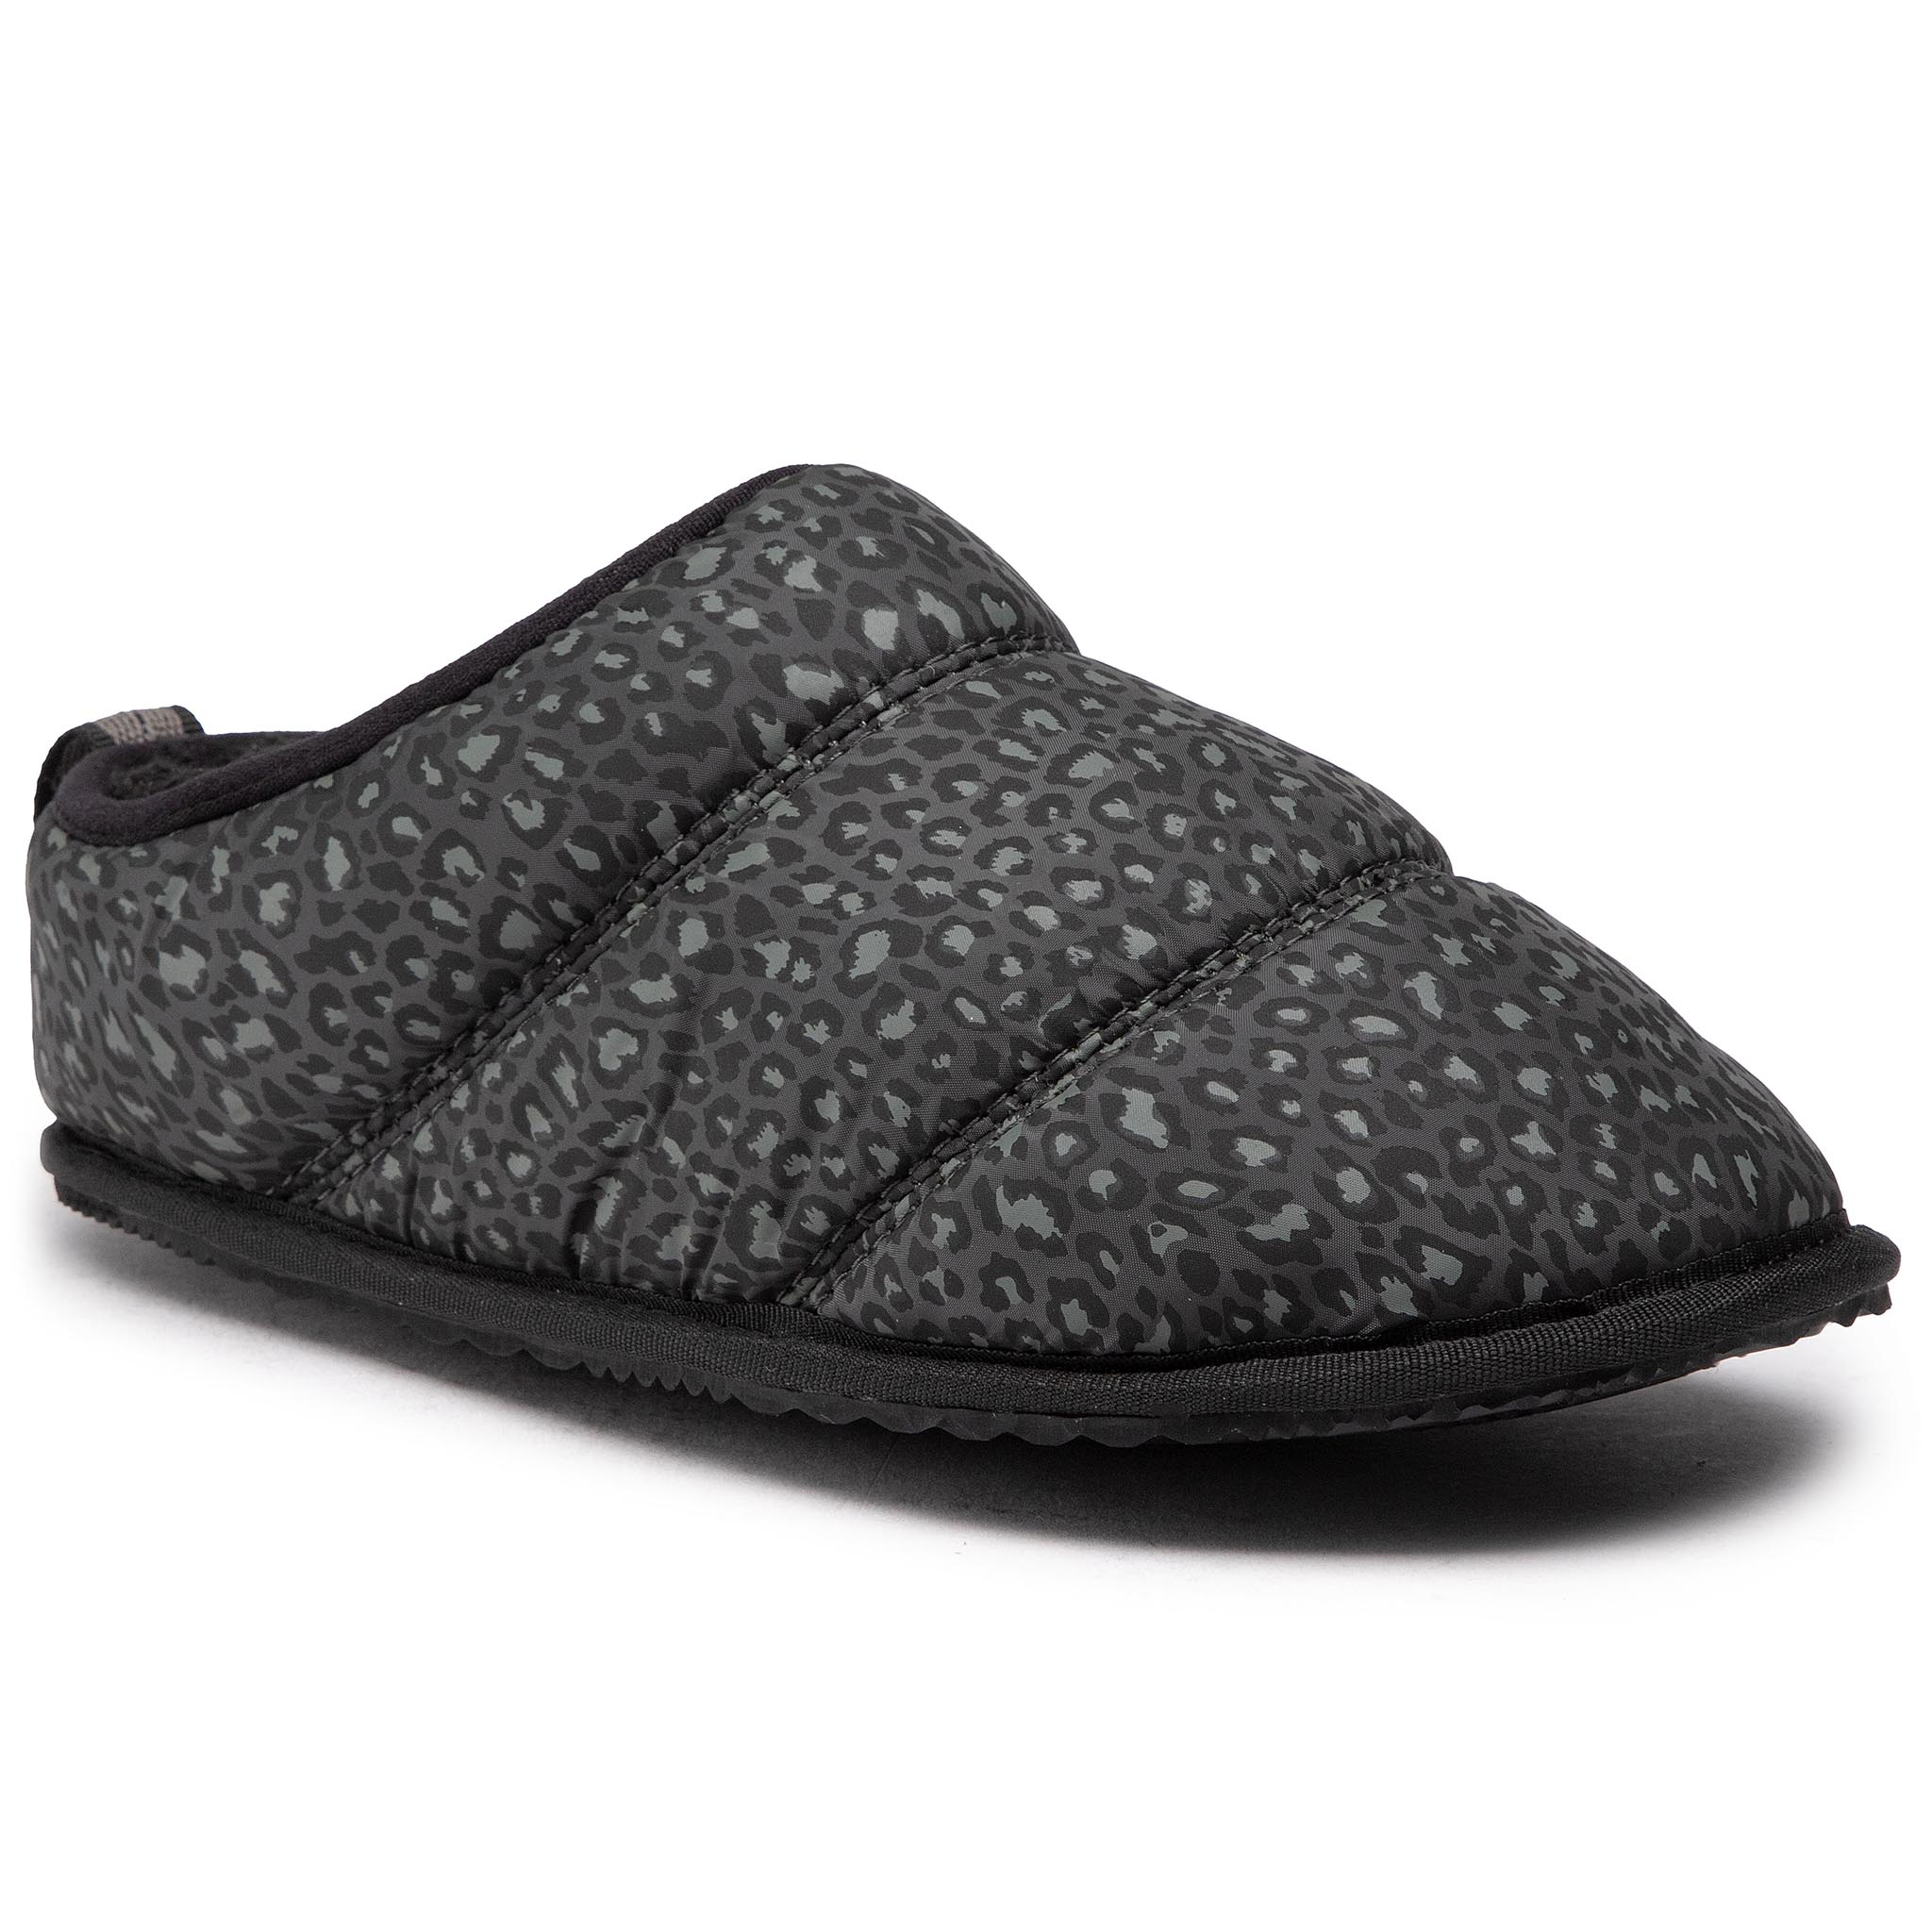 Pantuflas SOREL - Bodega Run NL3725 Black 010